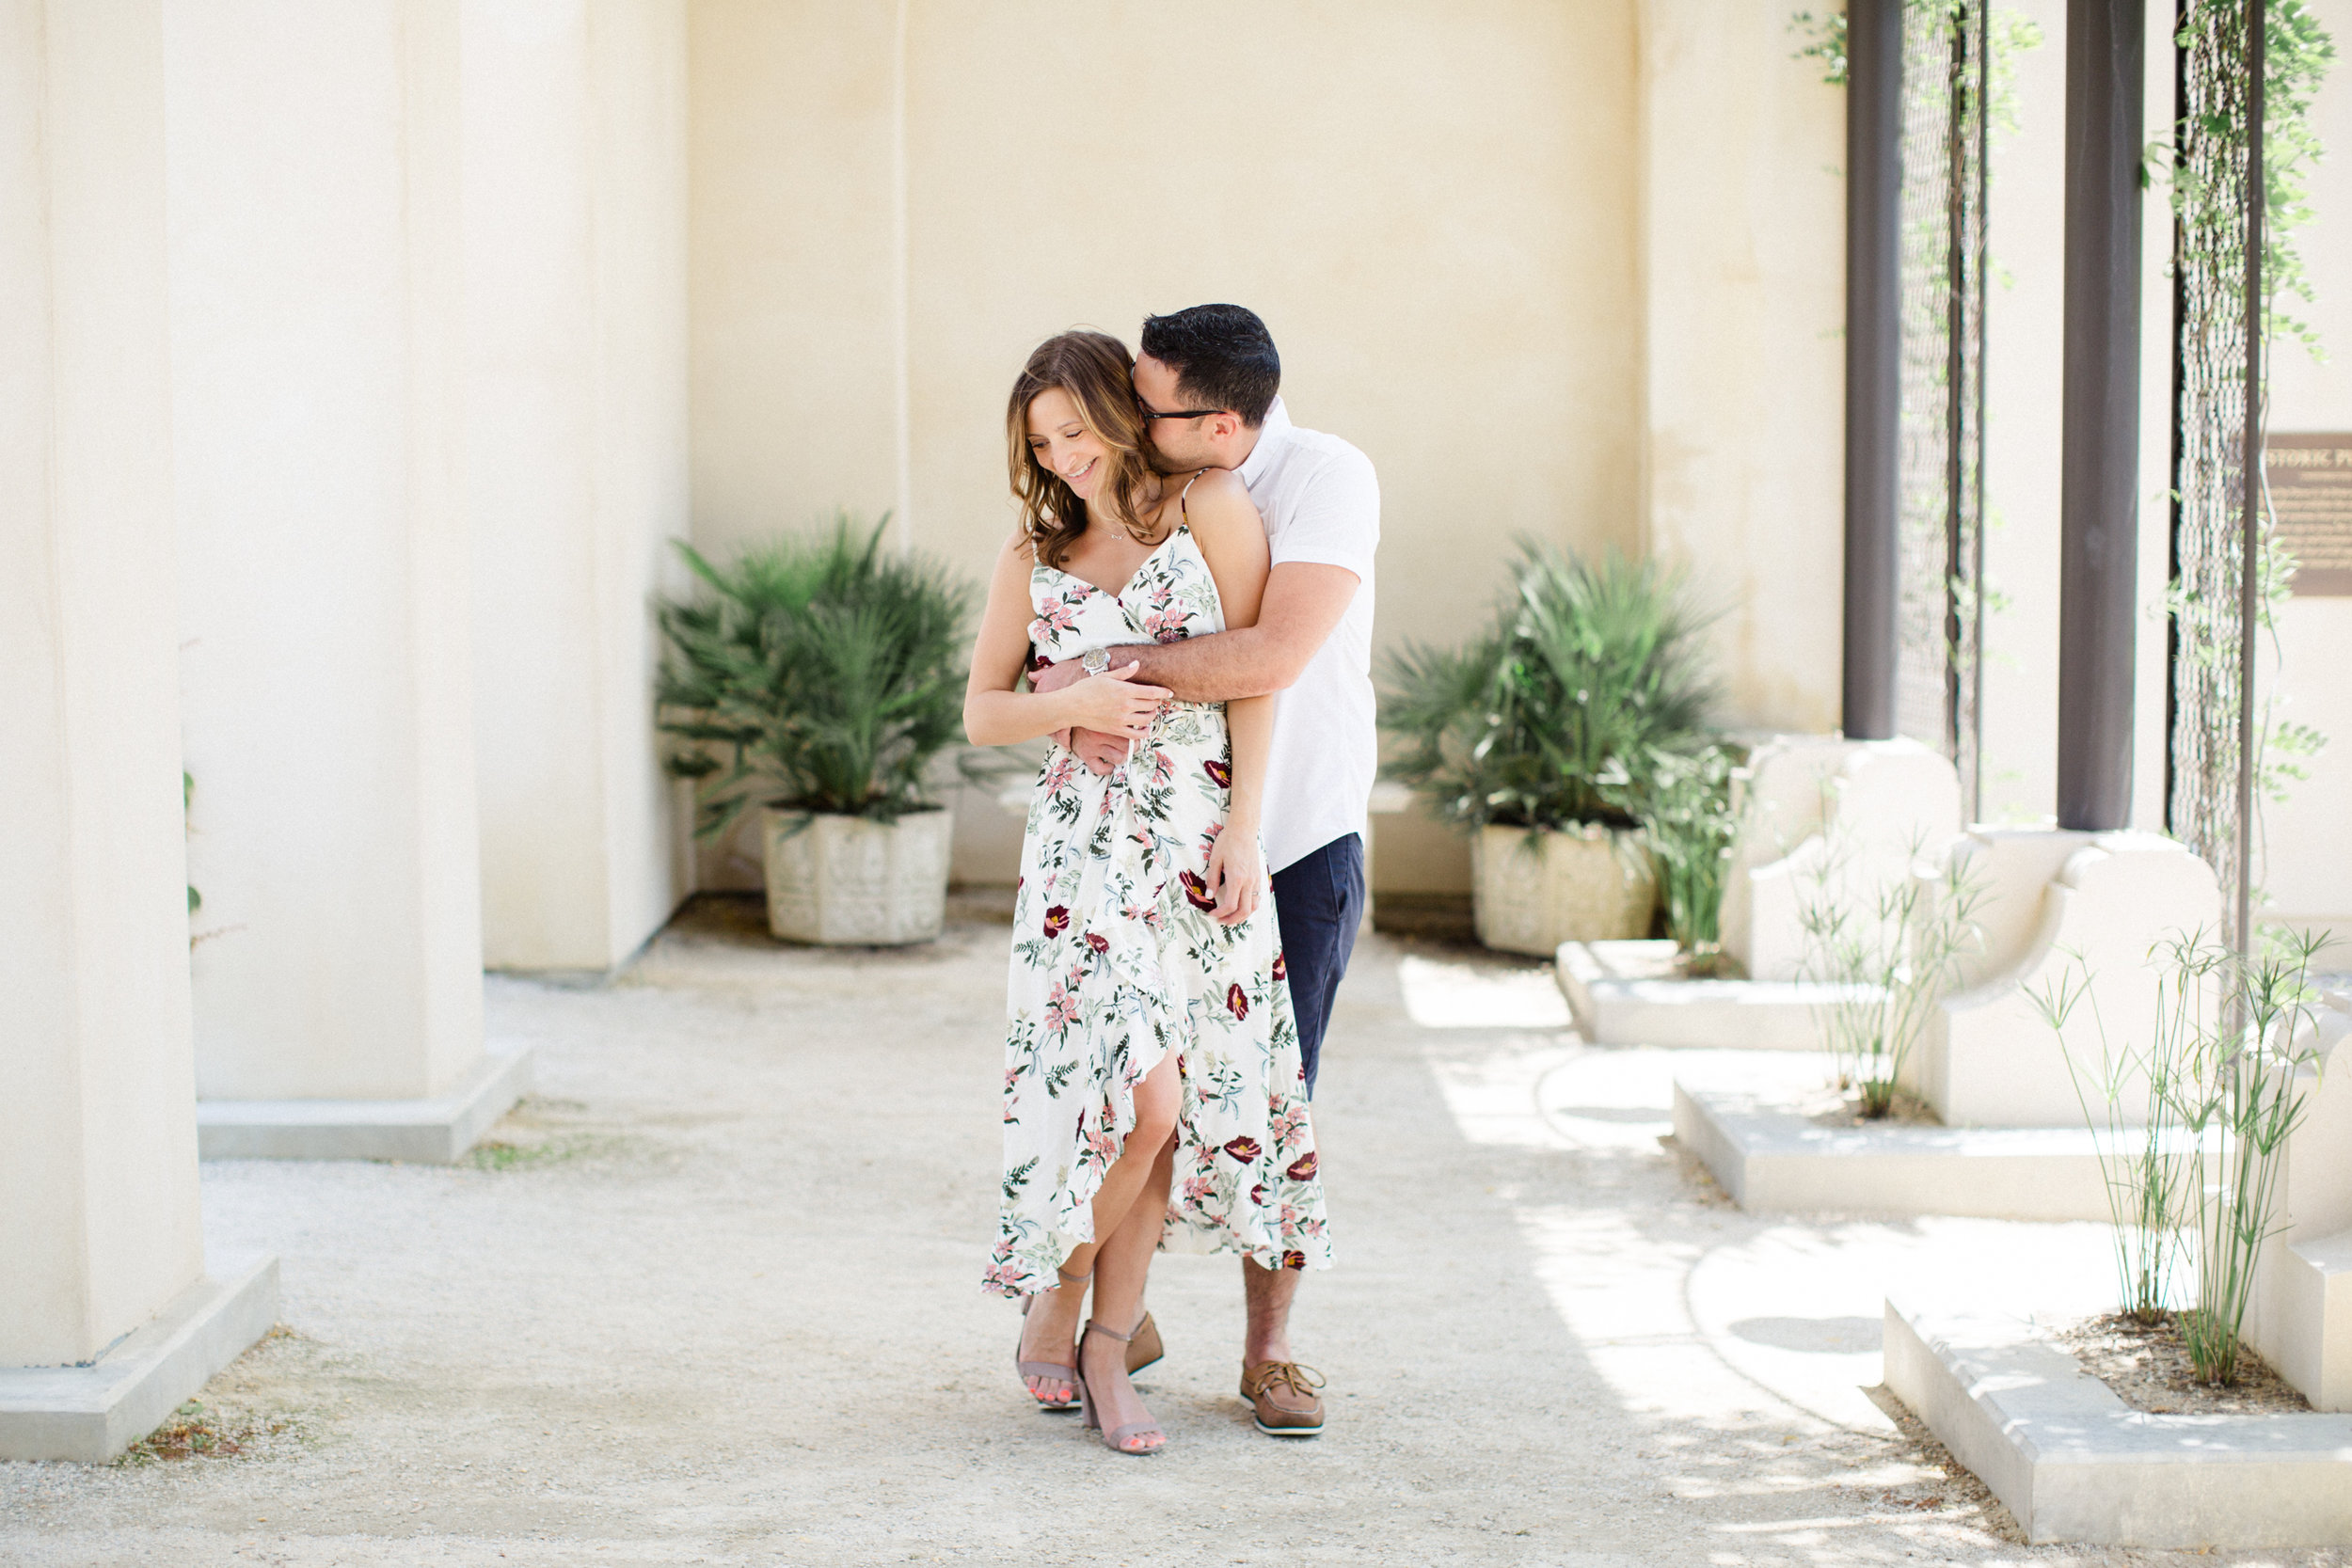 Longwood Gardens Engagement Session Photos_JDP-41.jpg